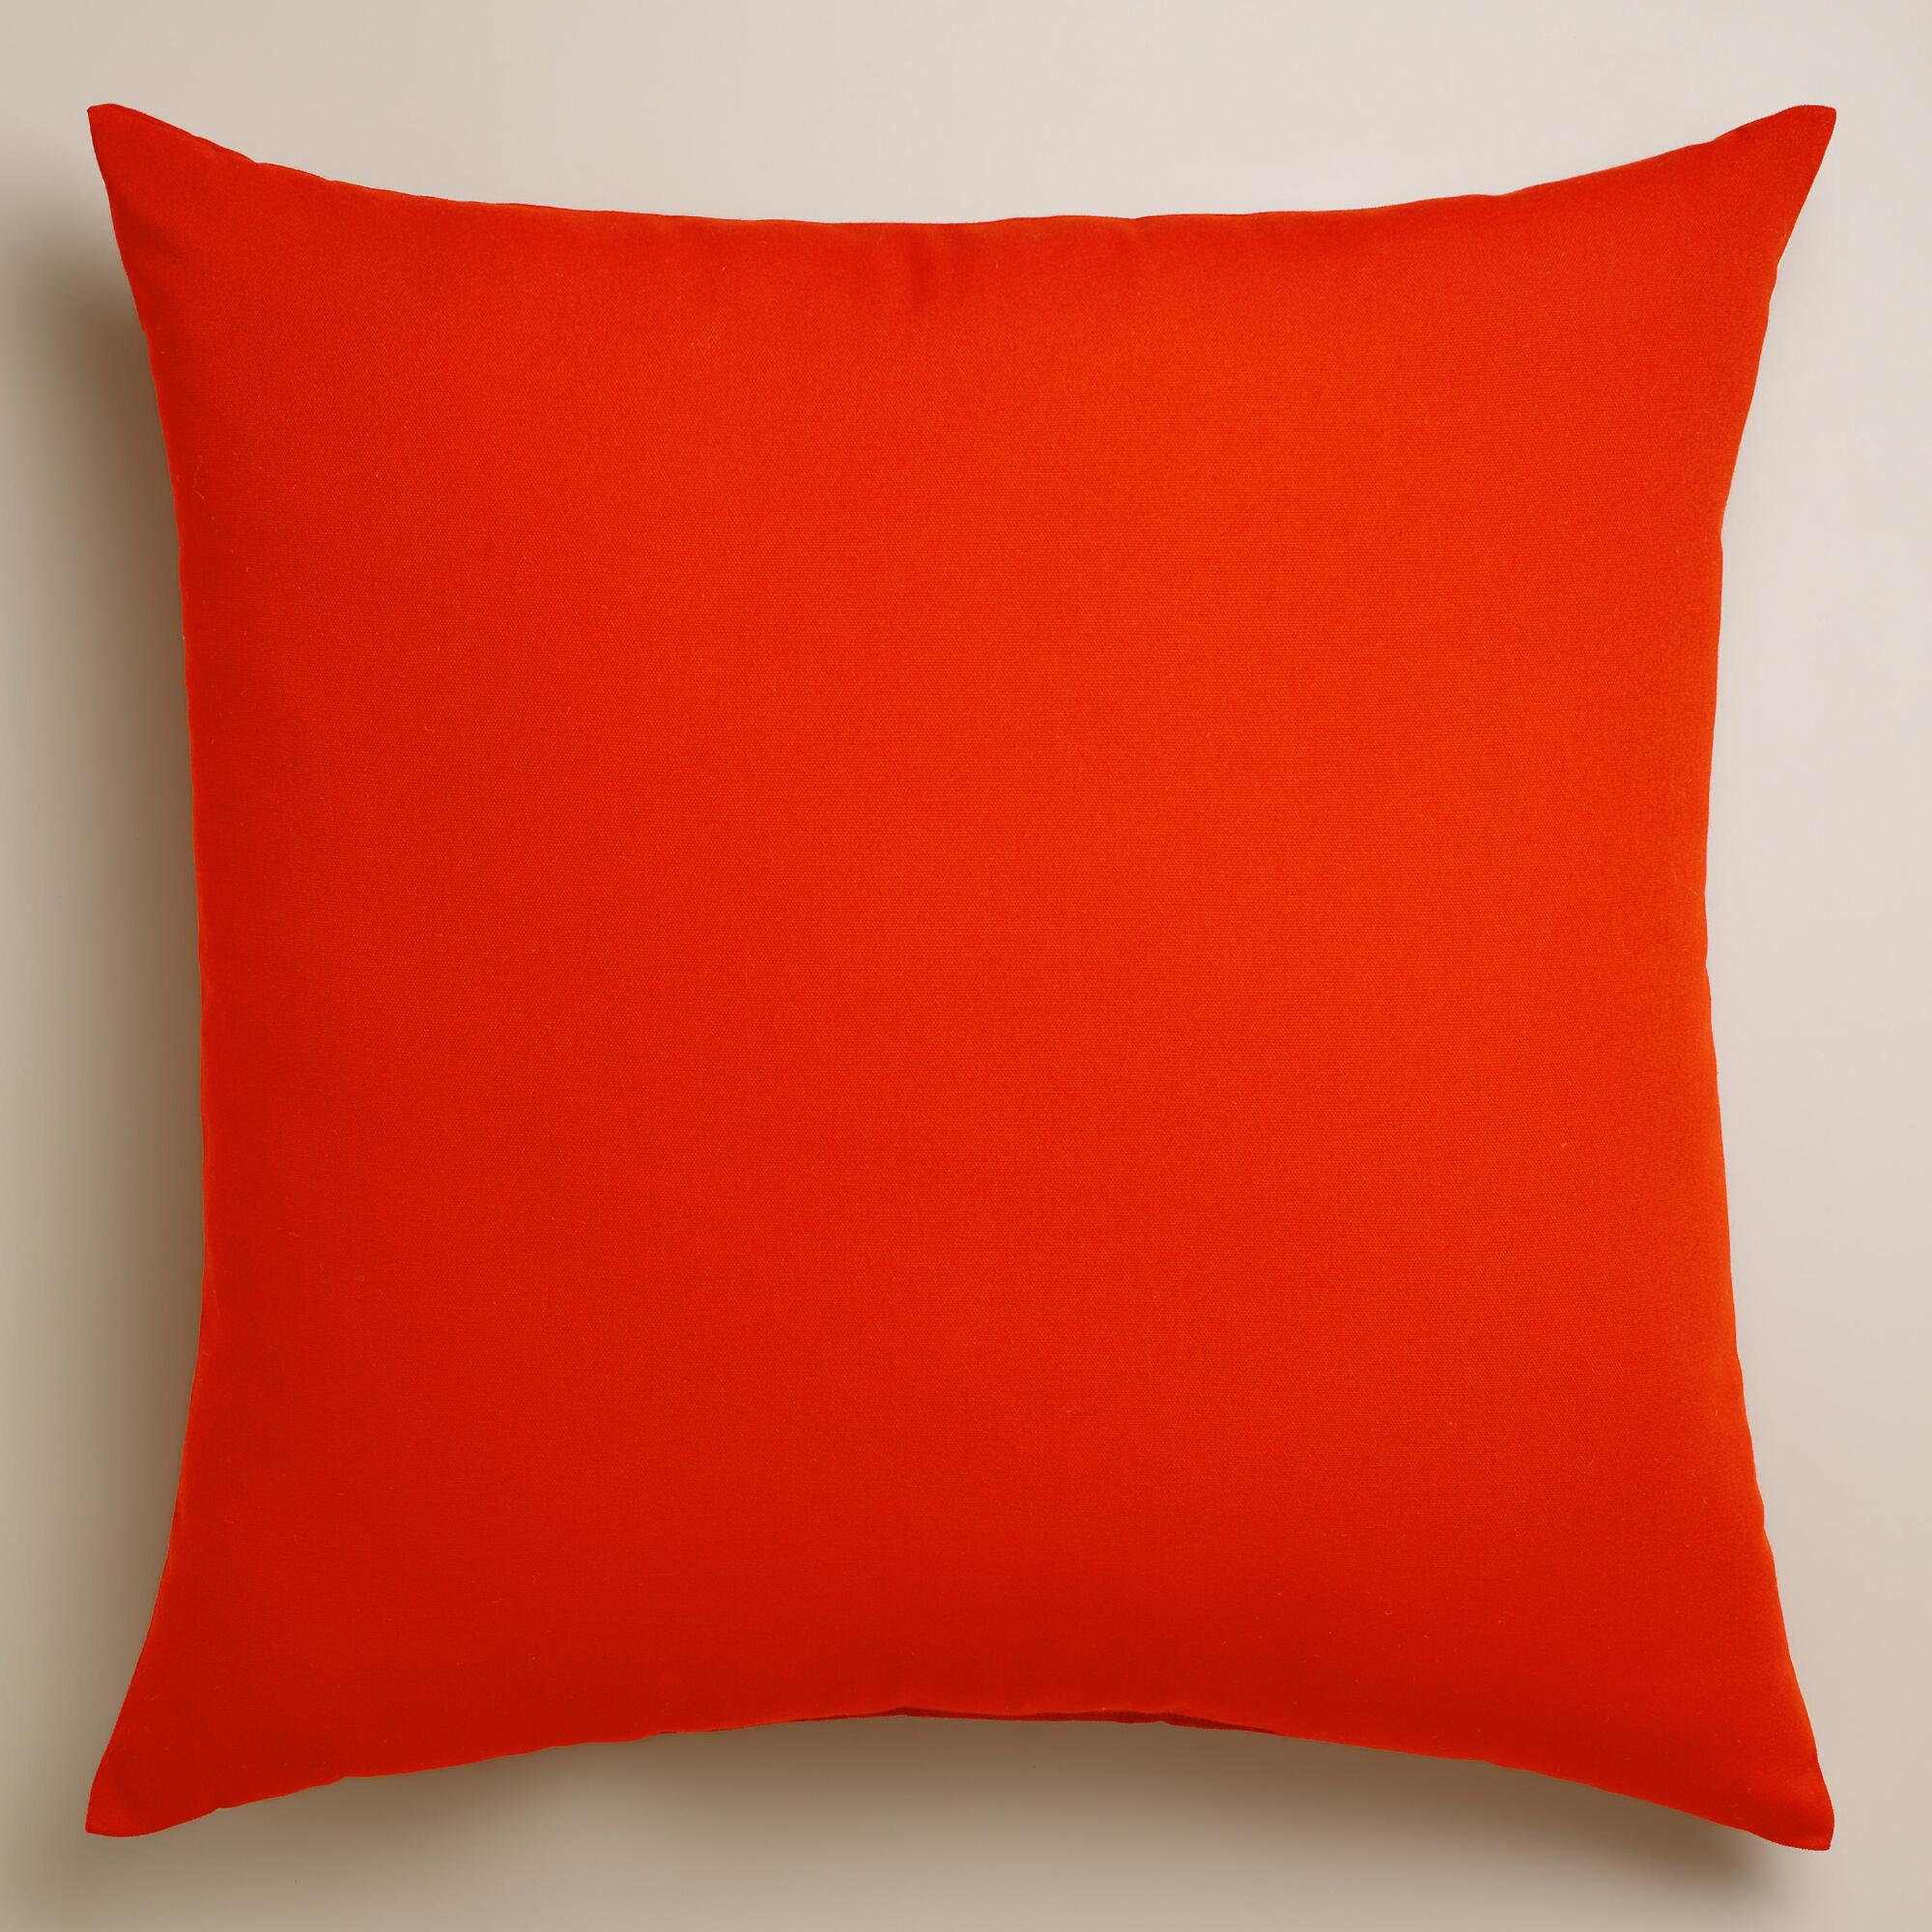 Throw Pillows With Orange : Orange Outdoor Throw Pillow World Market